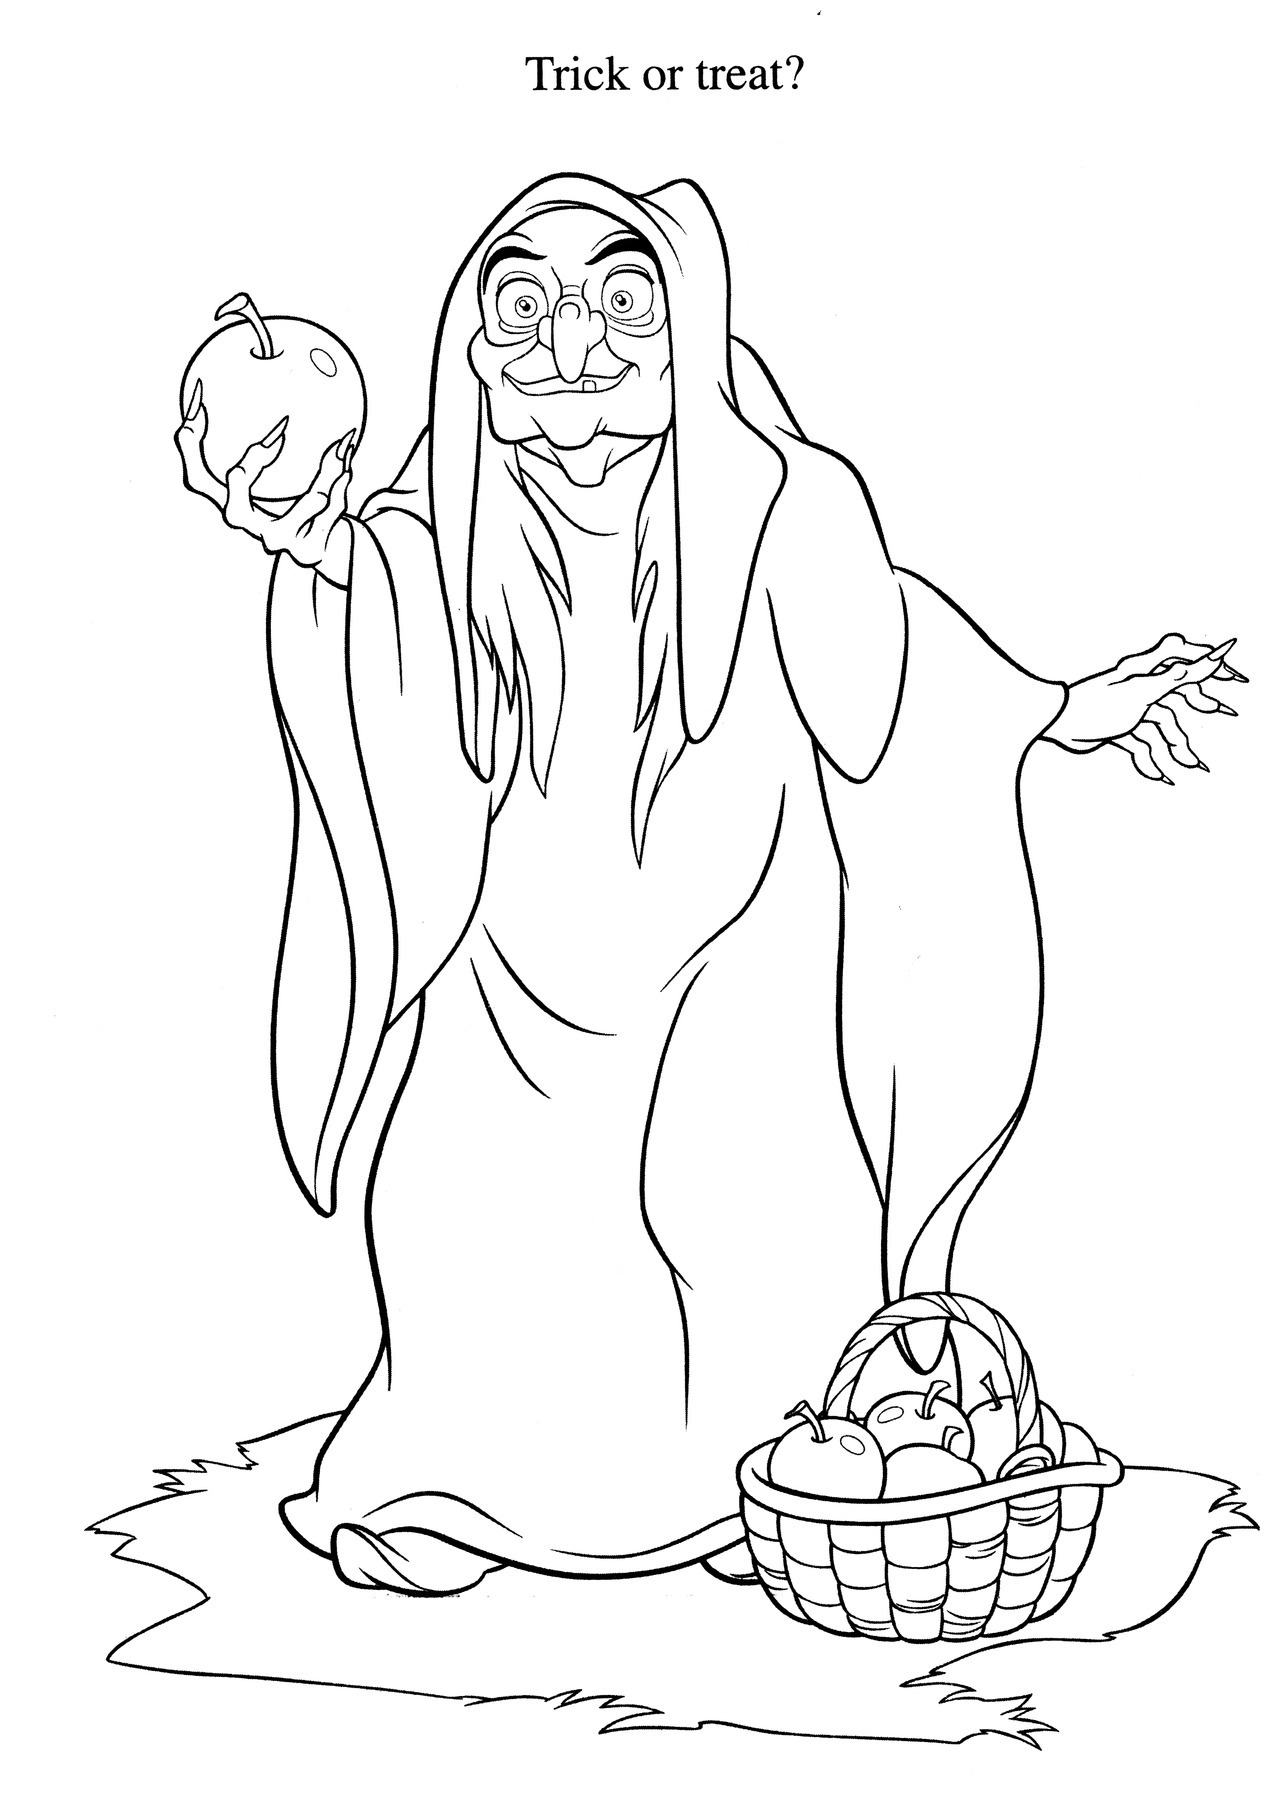 coloring printable witch printable witch coloring pages for kids cool2bkids witch printable coloring